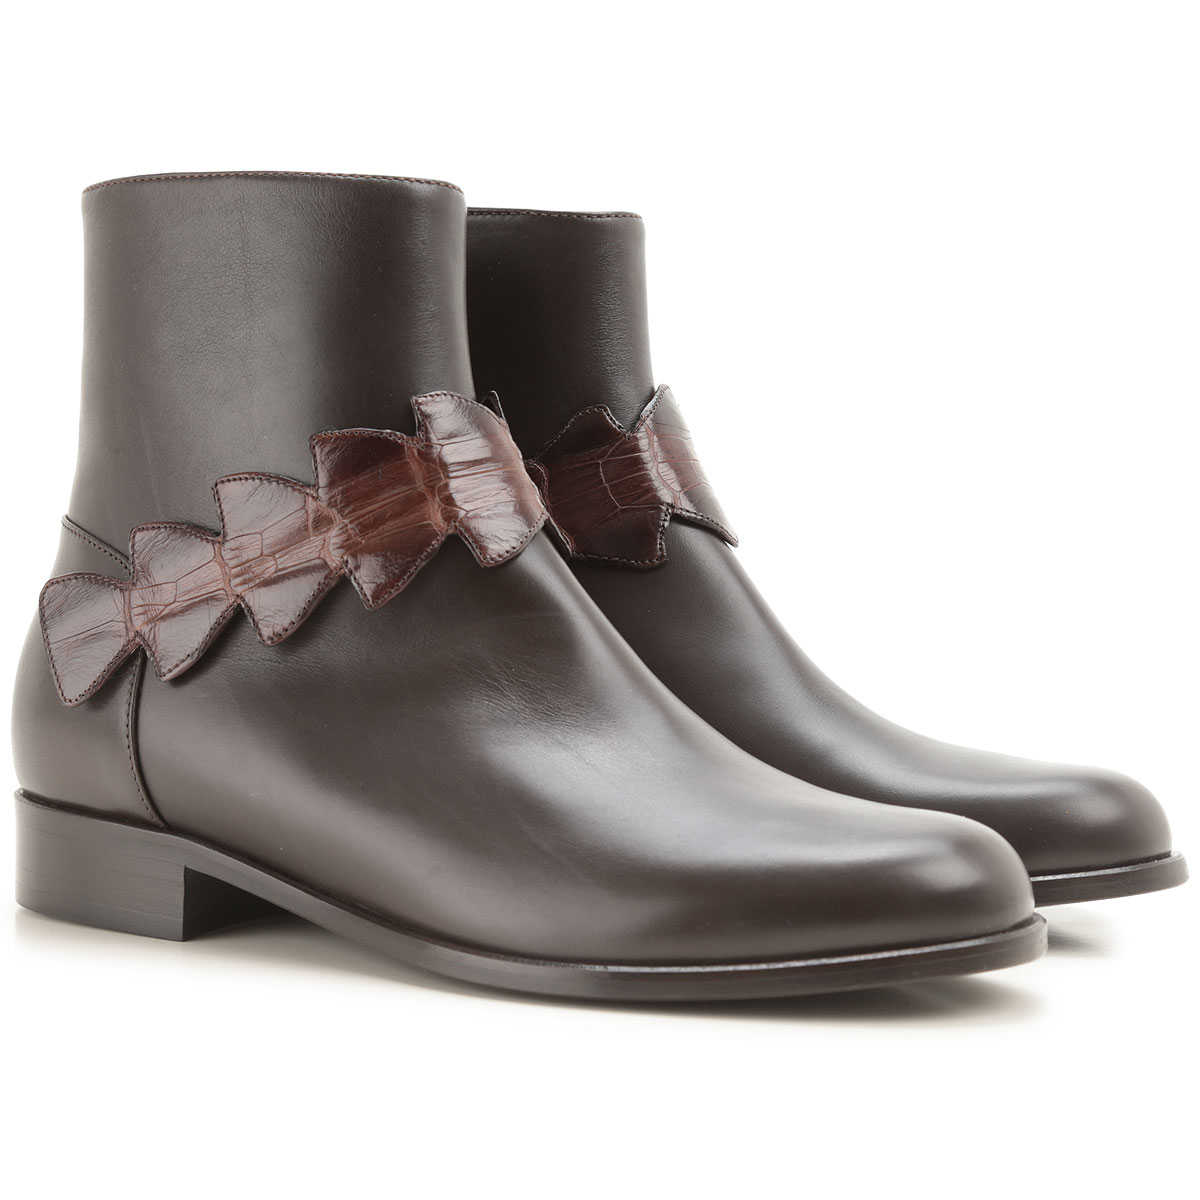 Fendi Boots for Women Booties On Sale in Outlet SE - GOOFASH